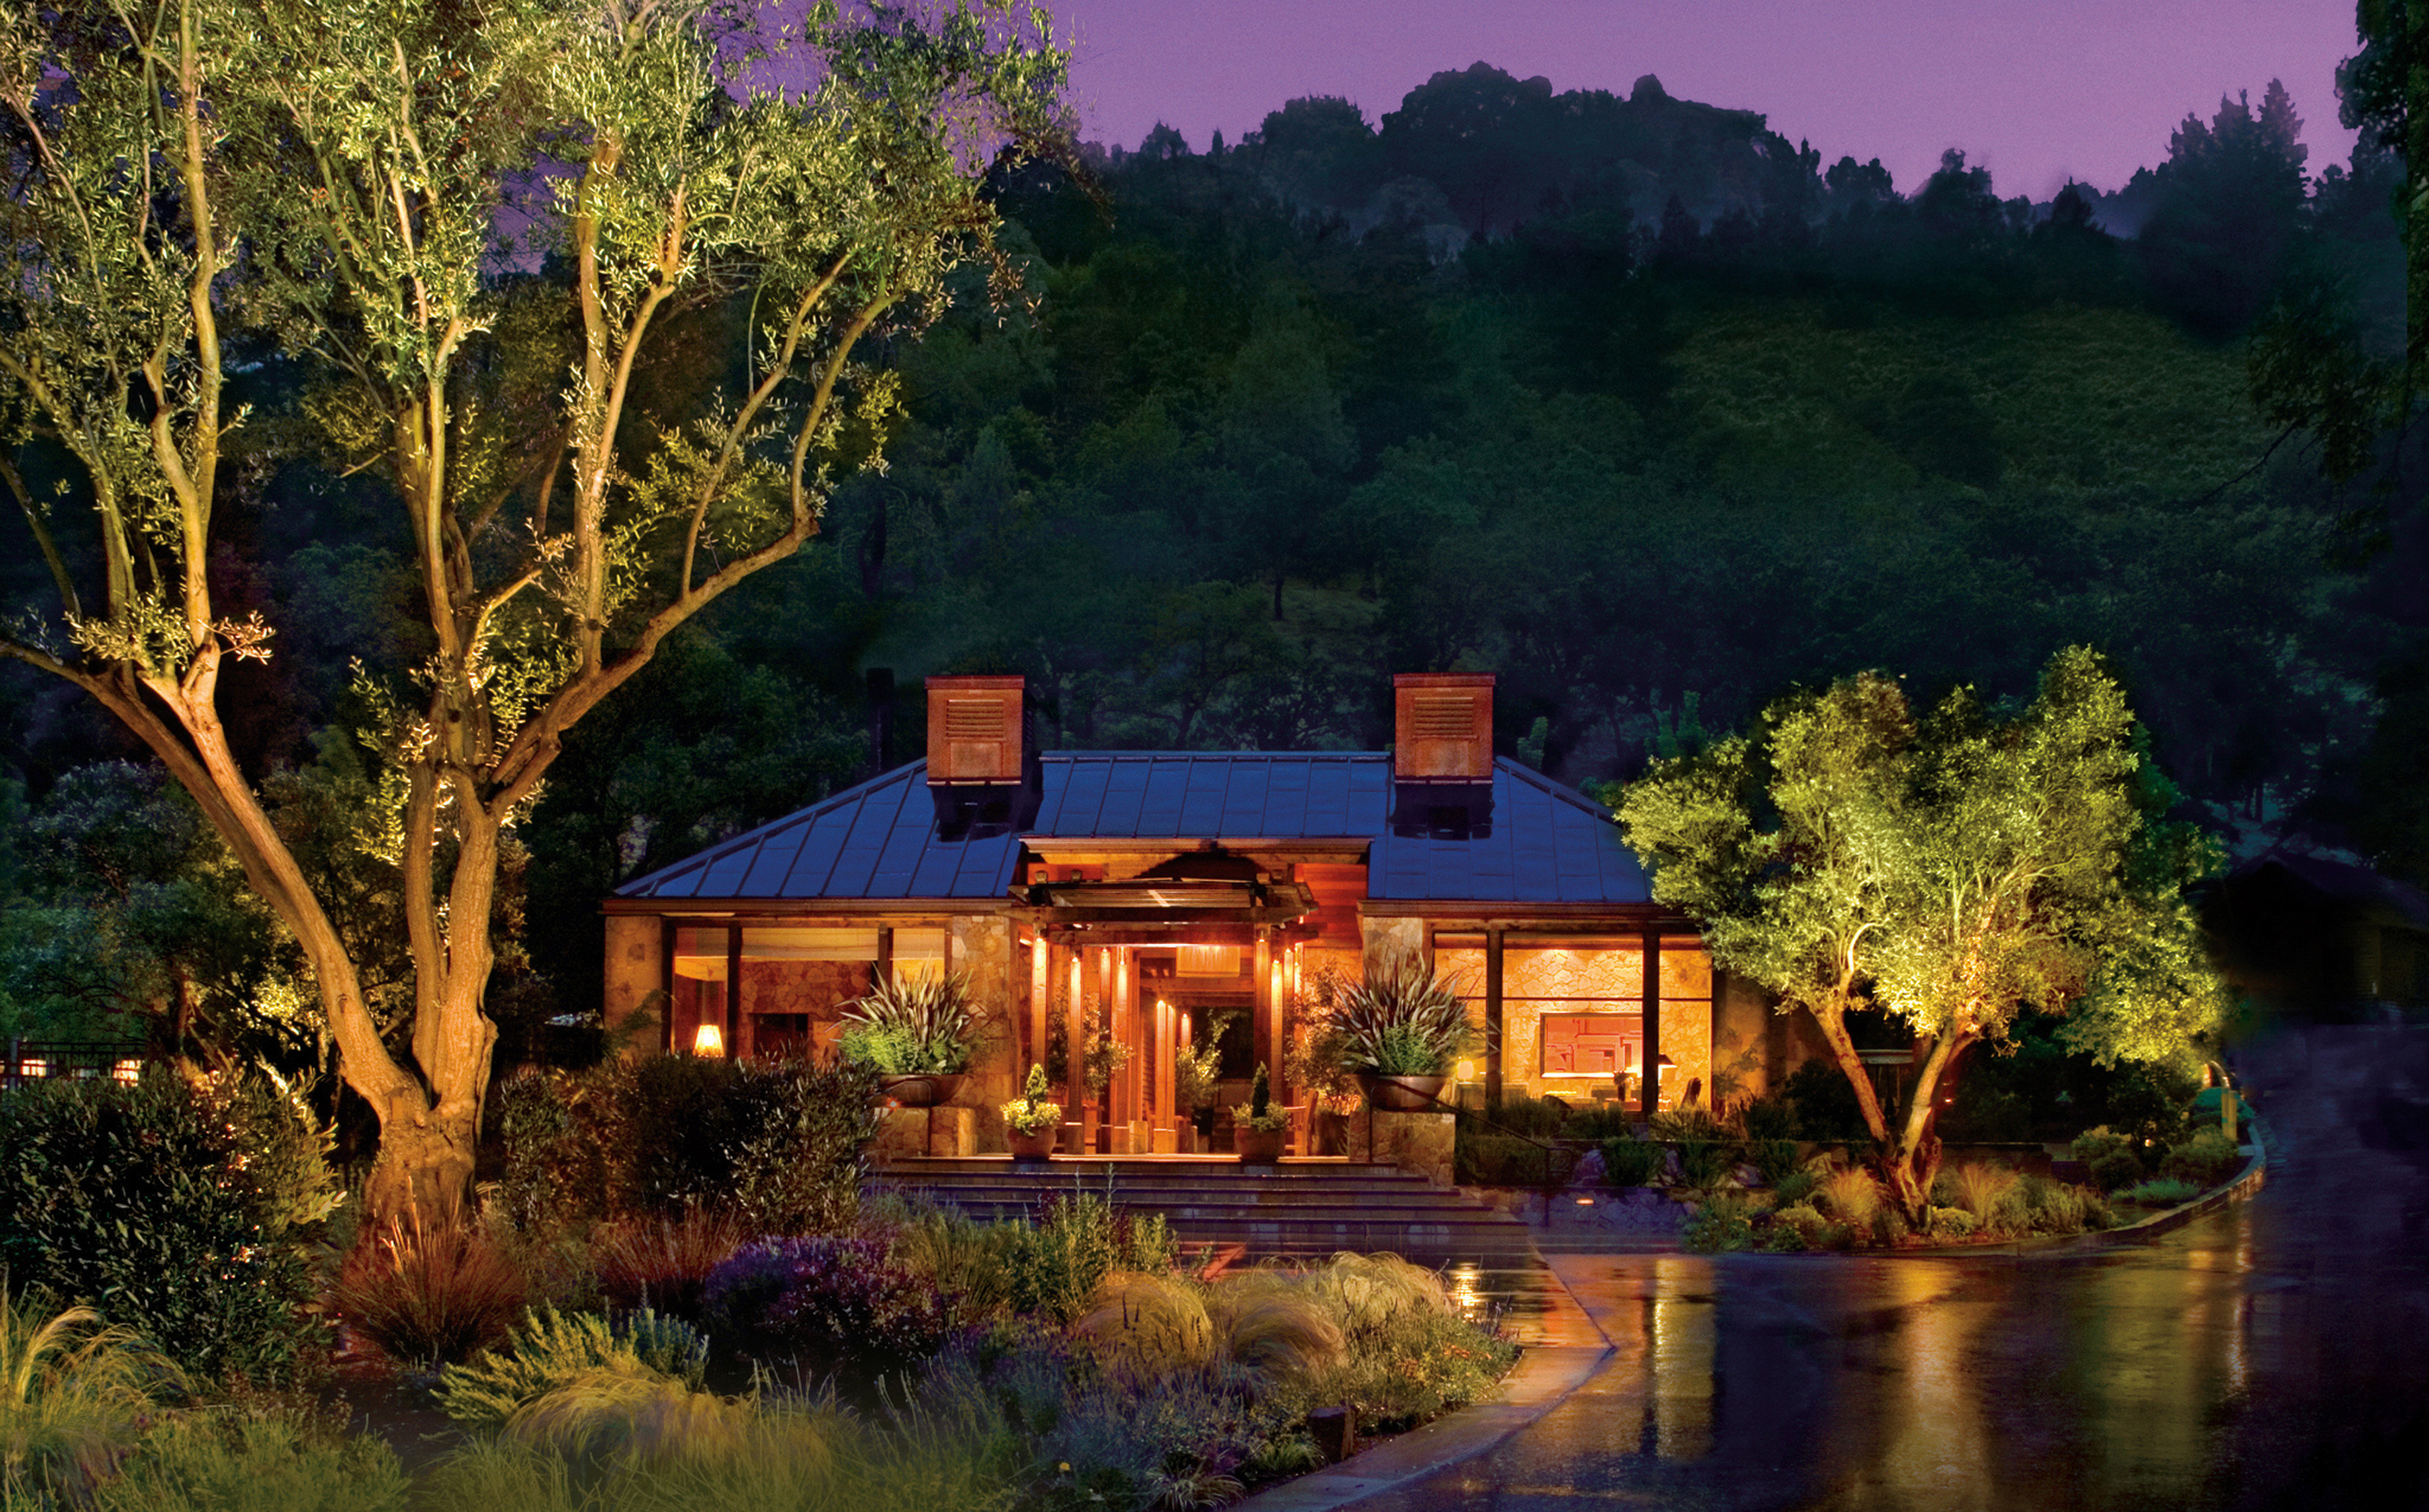 Eco Exterior Grounds Luxury Outdoors Ranch Romance Romantic Rustic Scenic views Wellness tree house home landscape lighting evening landscape mansion Resort backyard cottage plant Forest surrounded lush bushes hillside